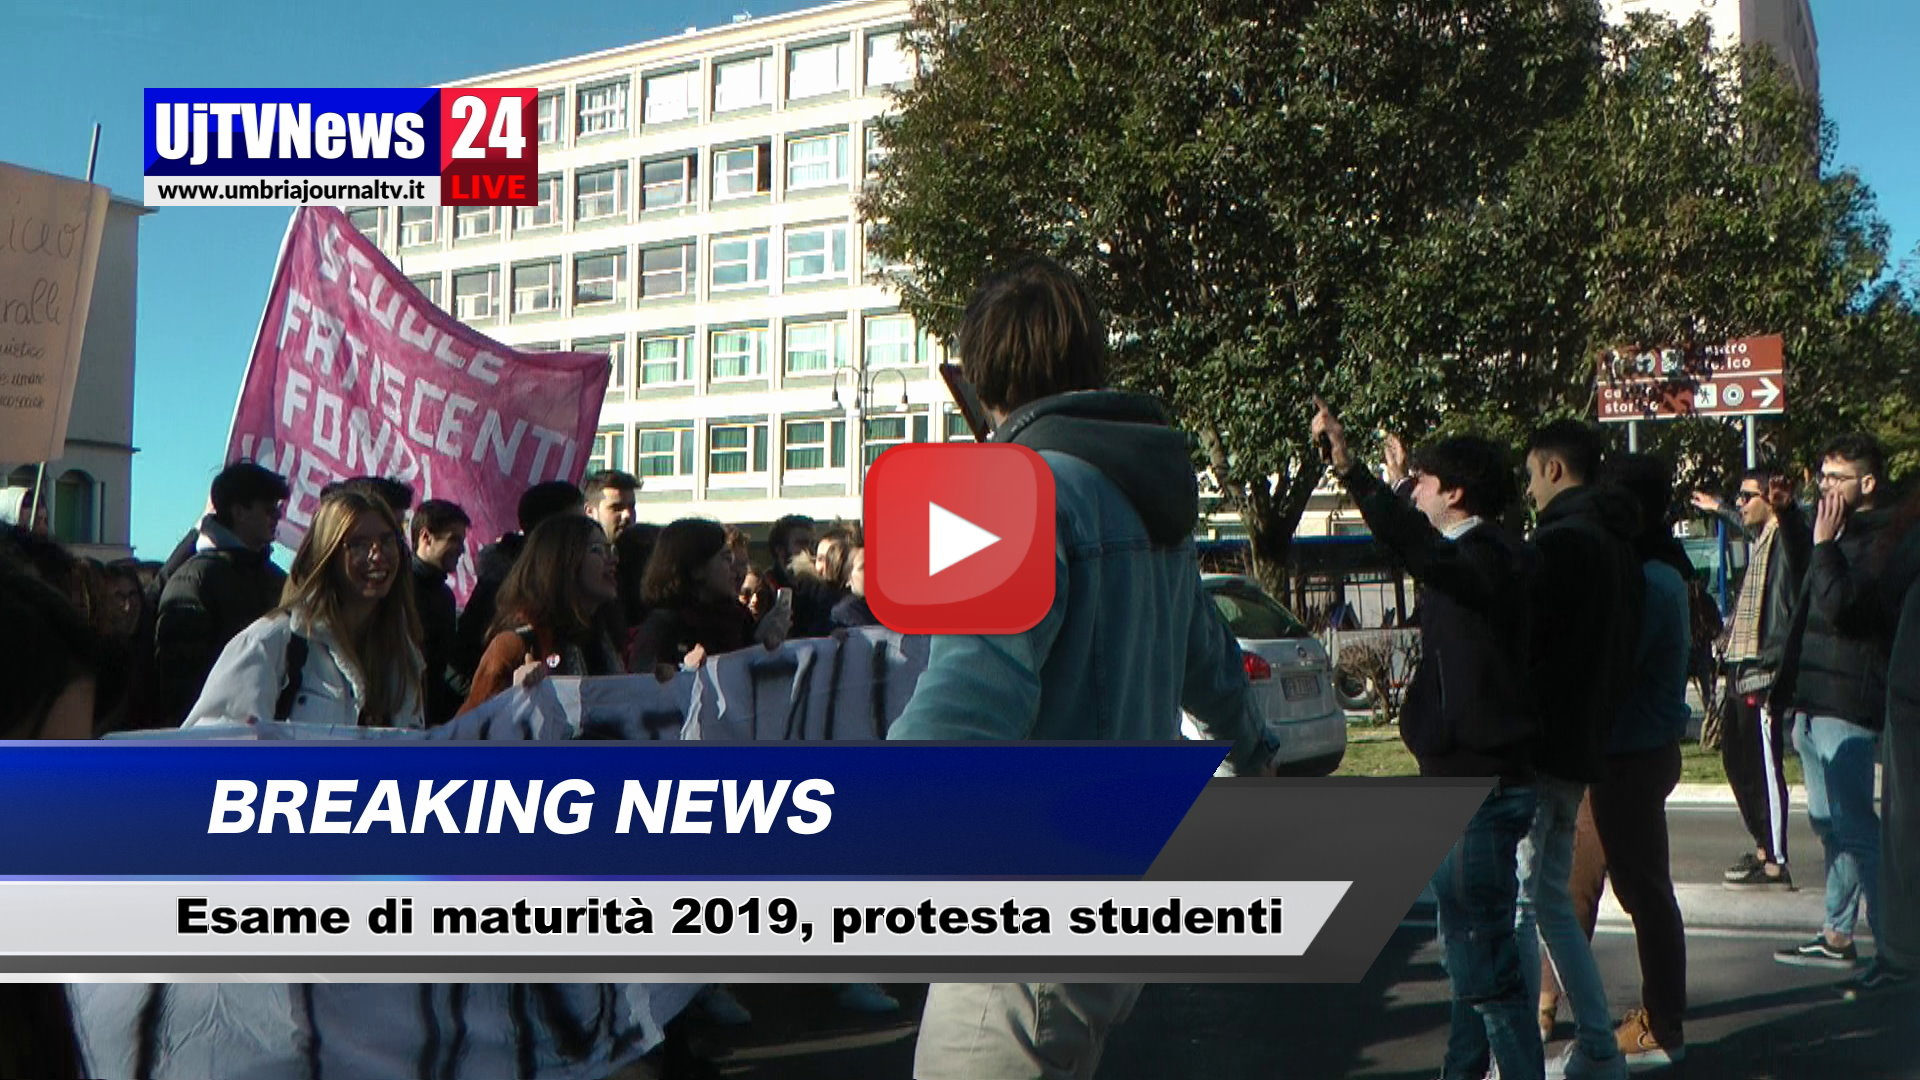 Esame di maturità 2019, corteo di protesta studentesco a Perugia, video